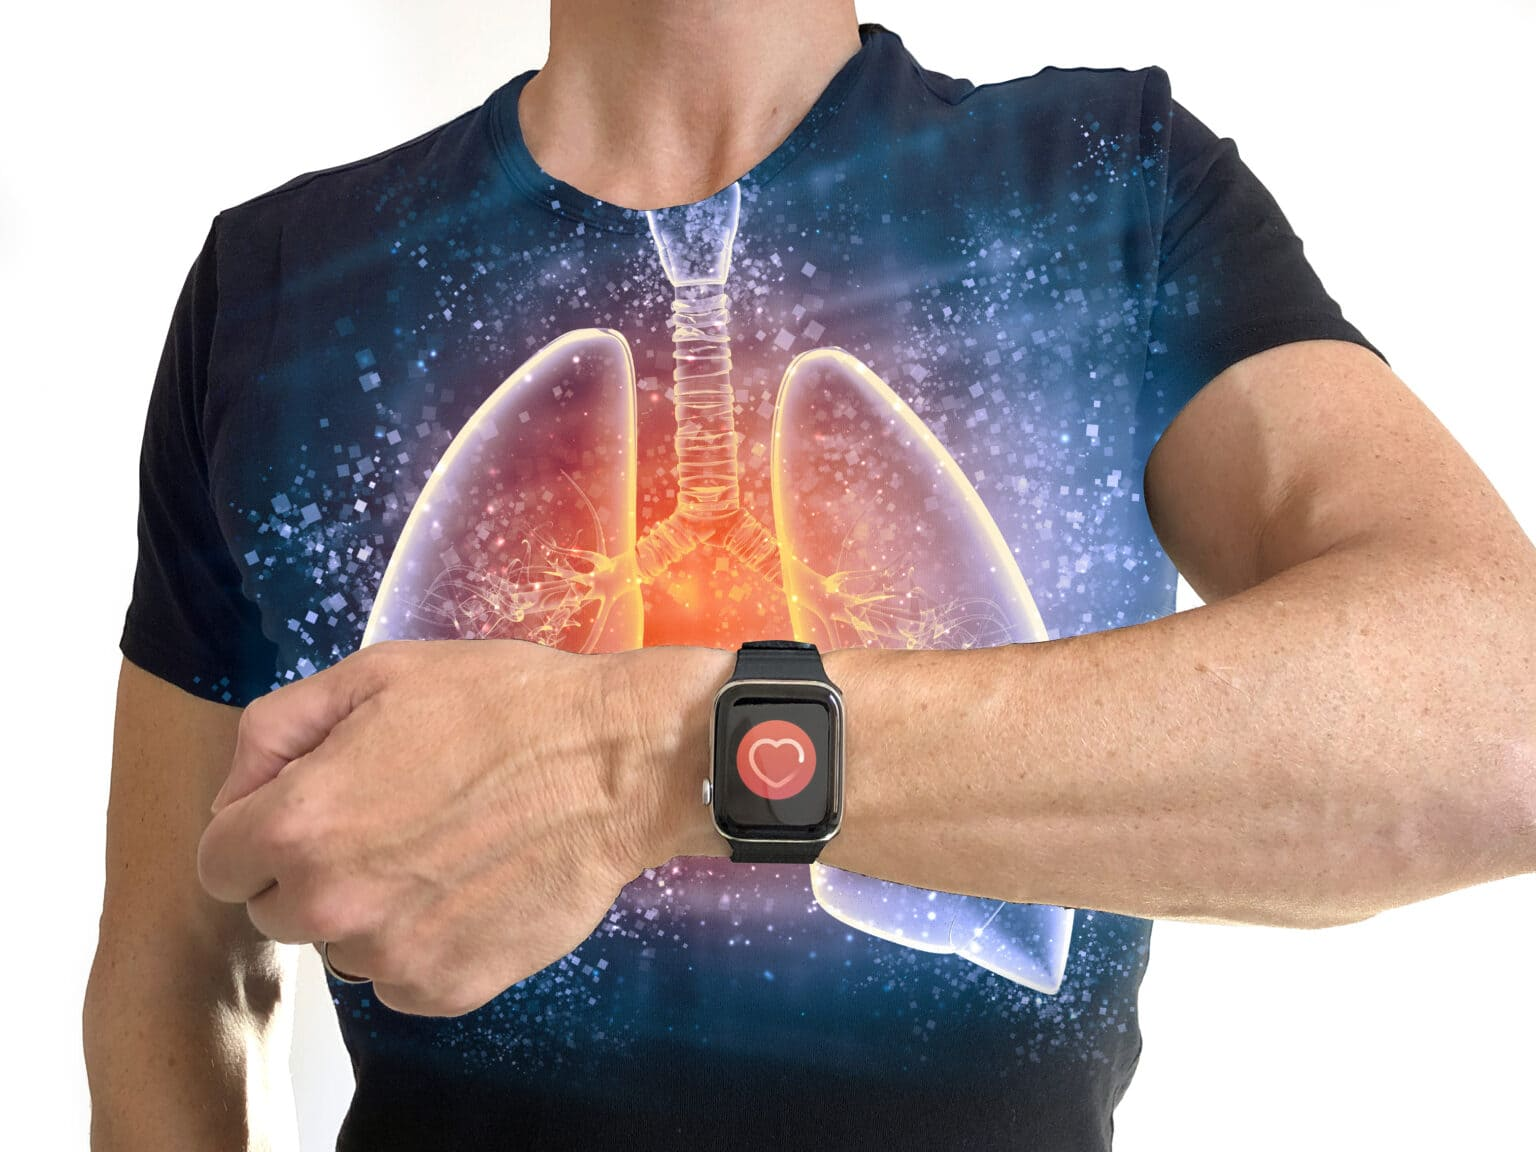 Low Cardio Fitness Notifications are about your lungs as well as your heart